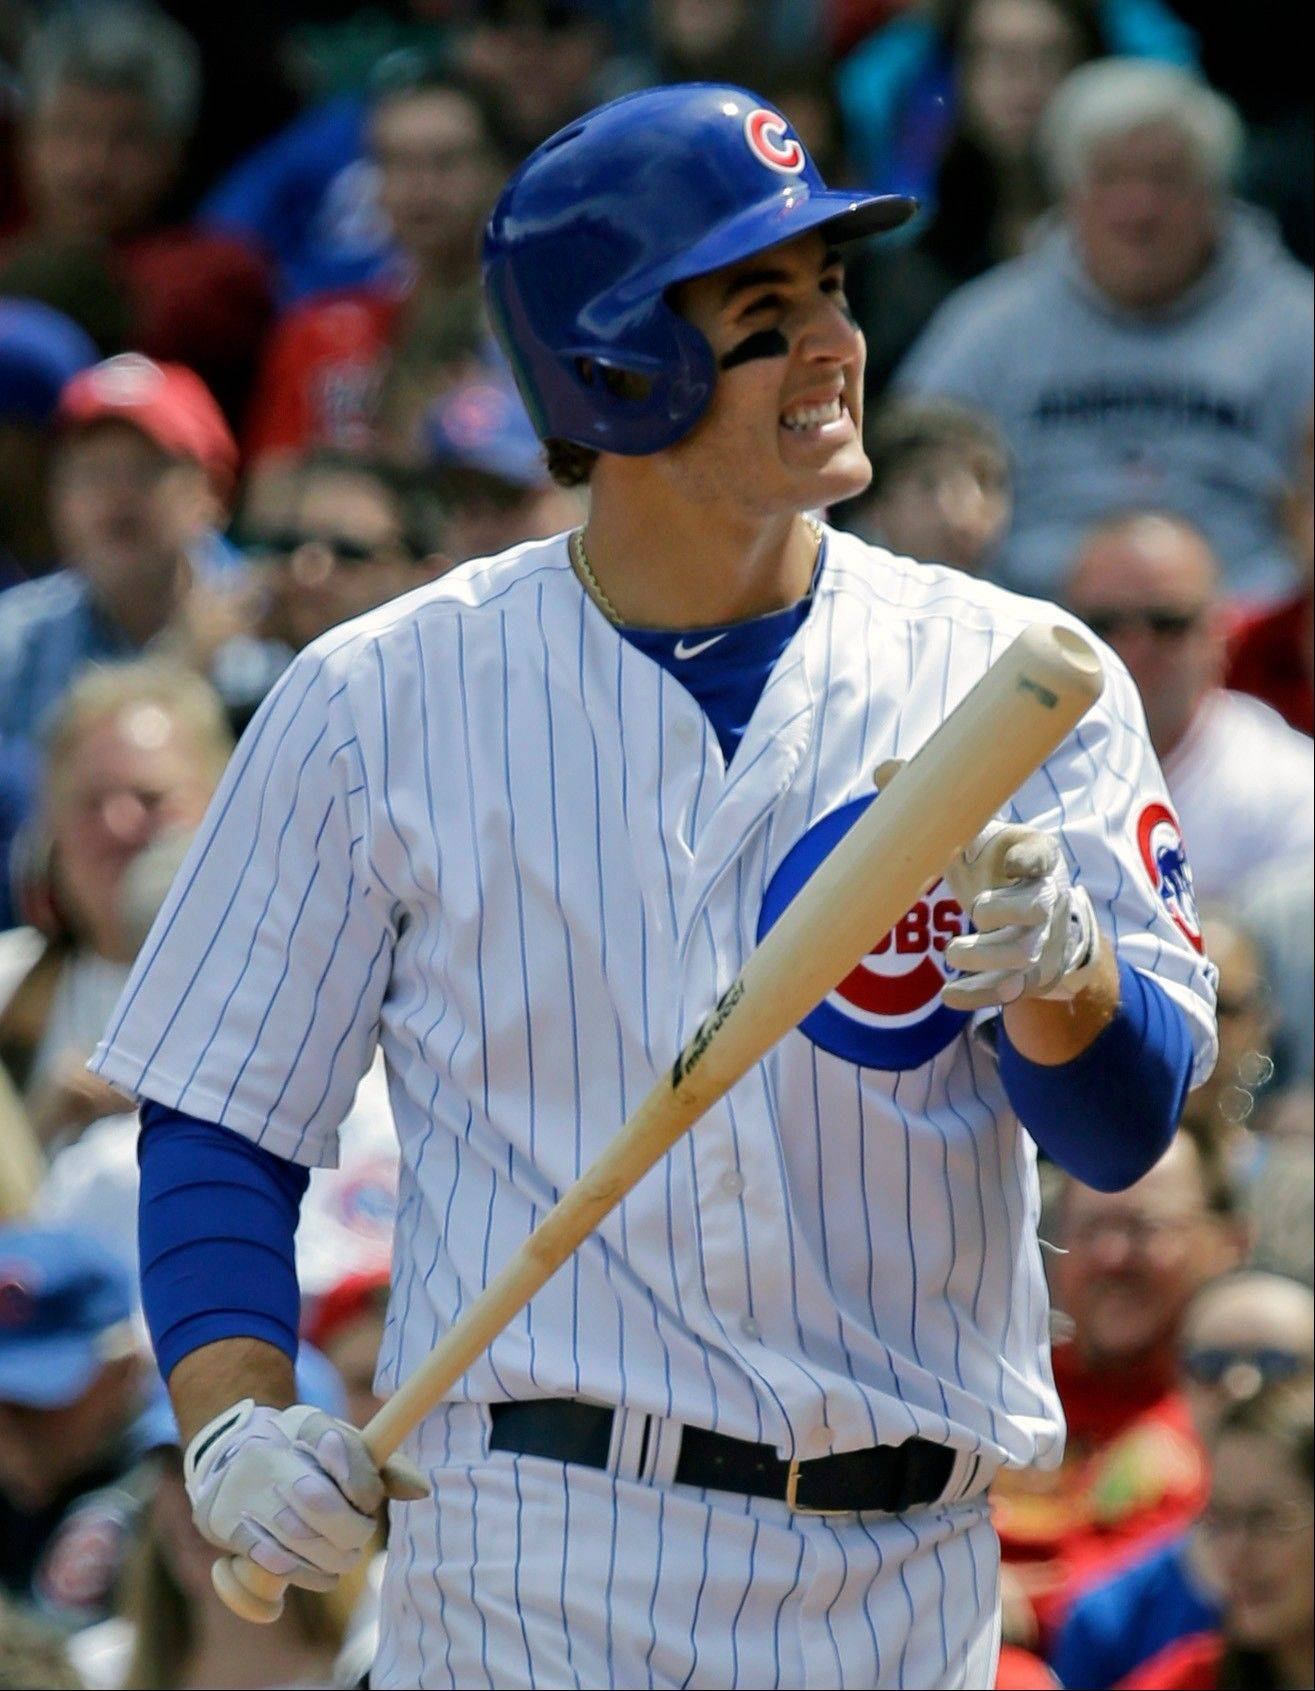 Cubs first baseman Anthony Rizzo reacts after striking out in the first inning of Sunday's 7-4 loss to the Reds at Wrigley Field.